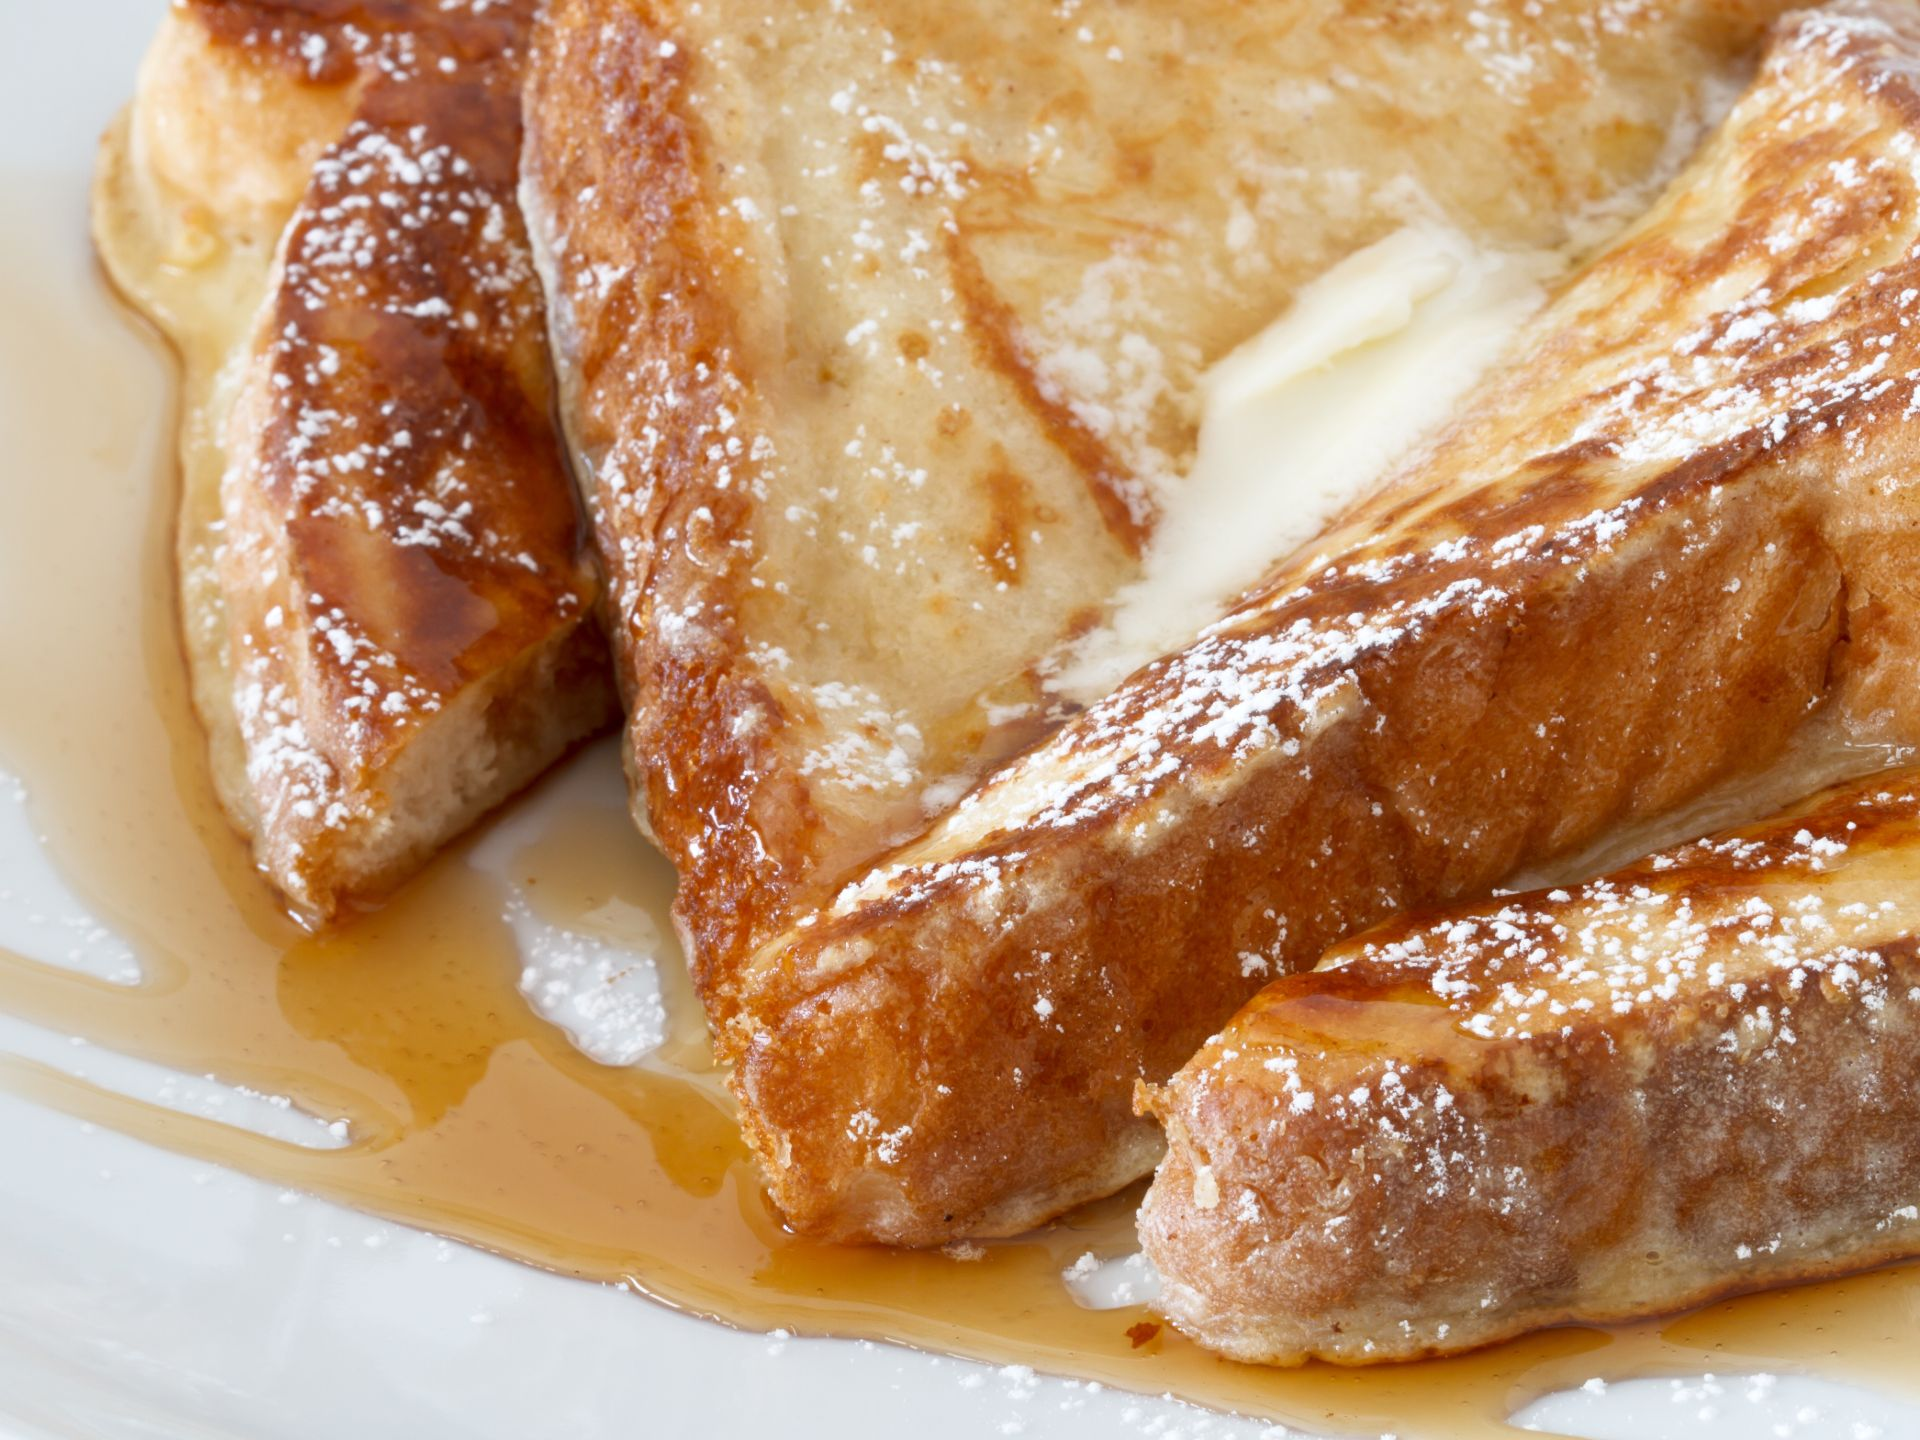 French toast sliced with butter and maple syrup